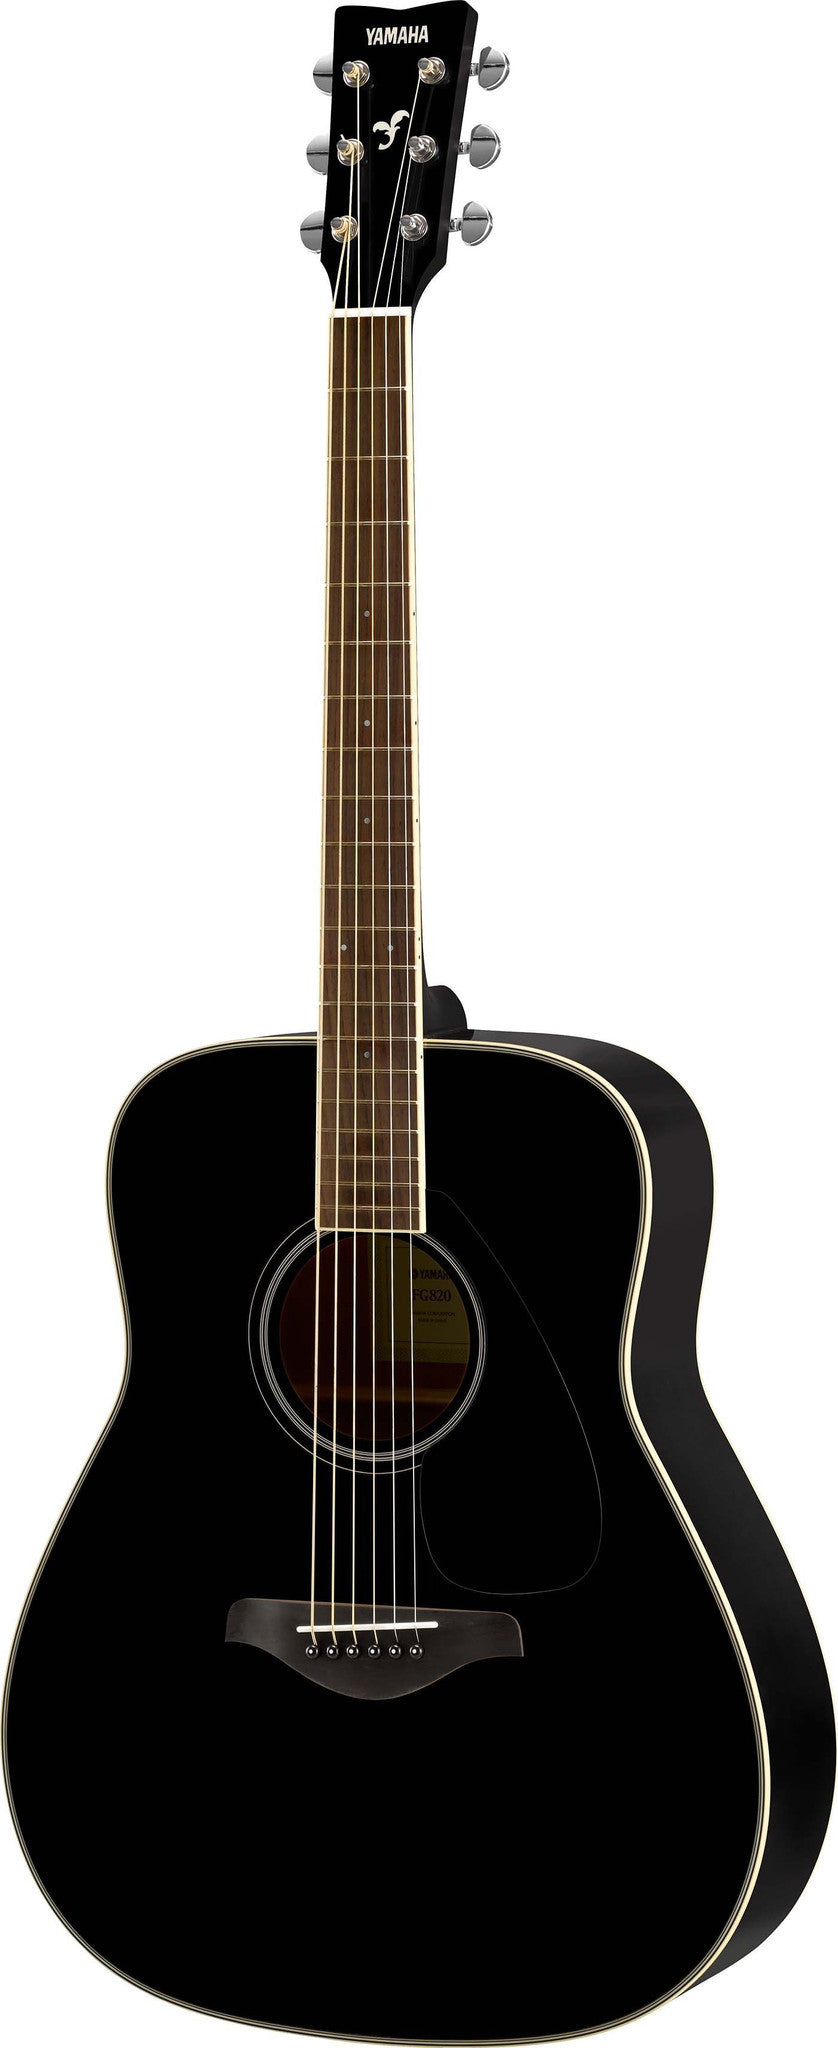 Yamaha FG820BL Dreadnought Acoustic Guitar Bundle